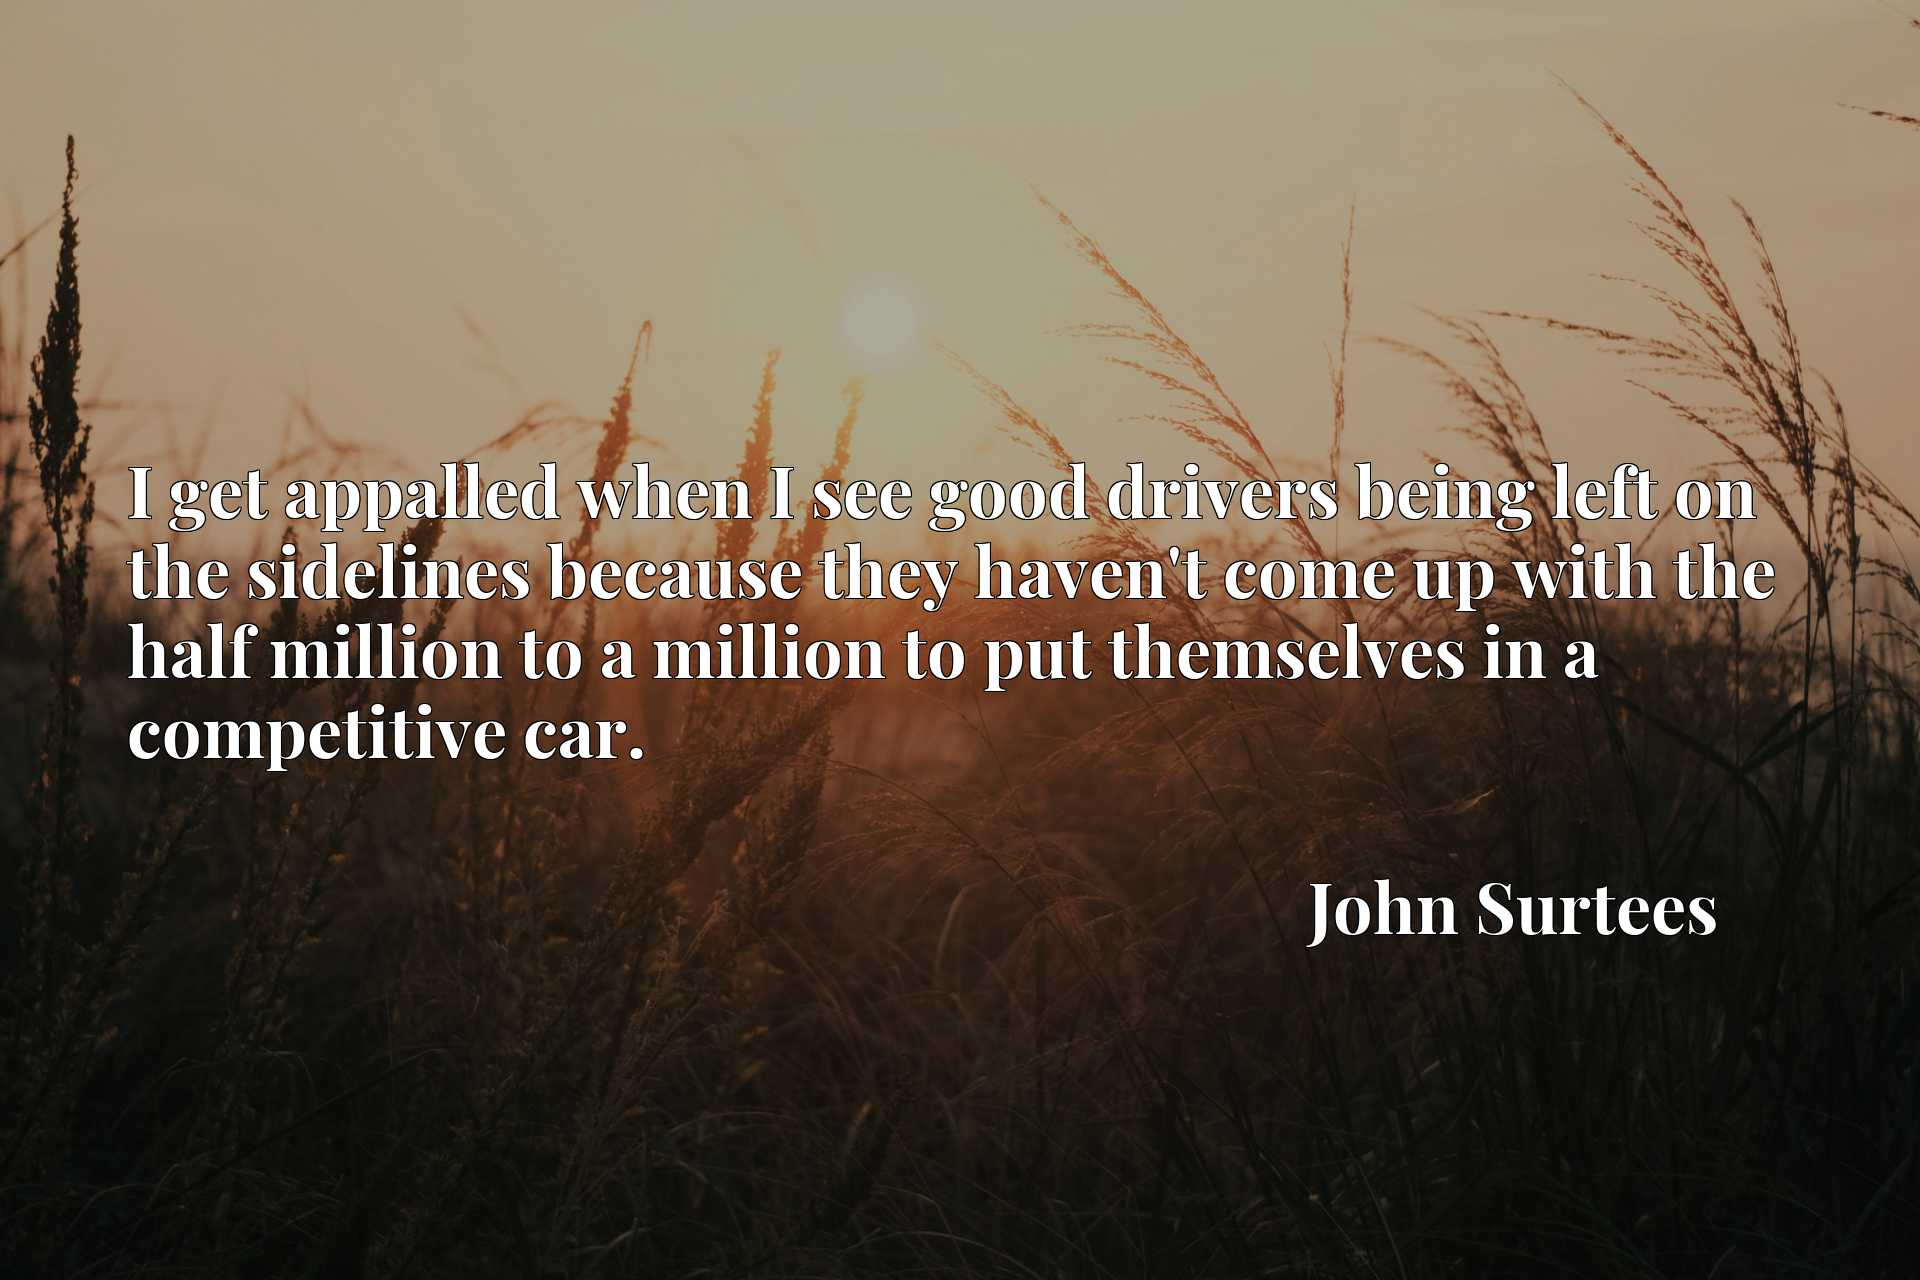 I get appalled when I see good drivers being left on the sidelines because they haven't come up with the half million to a million to put themselves in a competitive car.